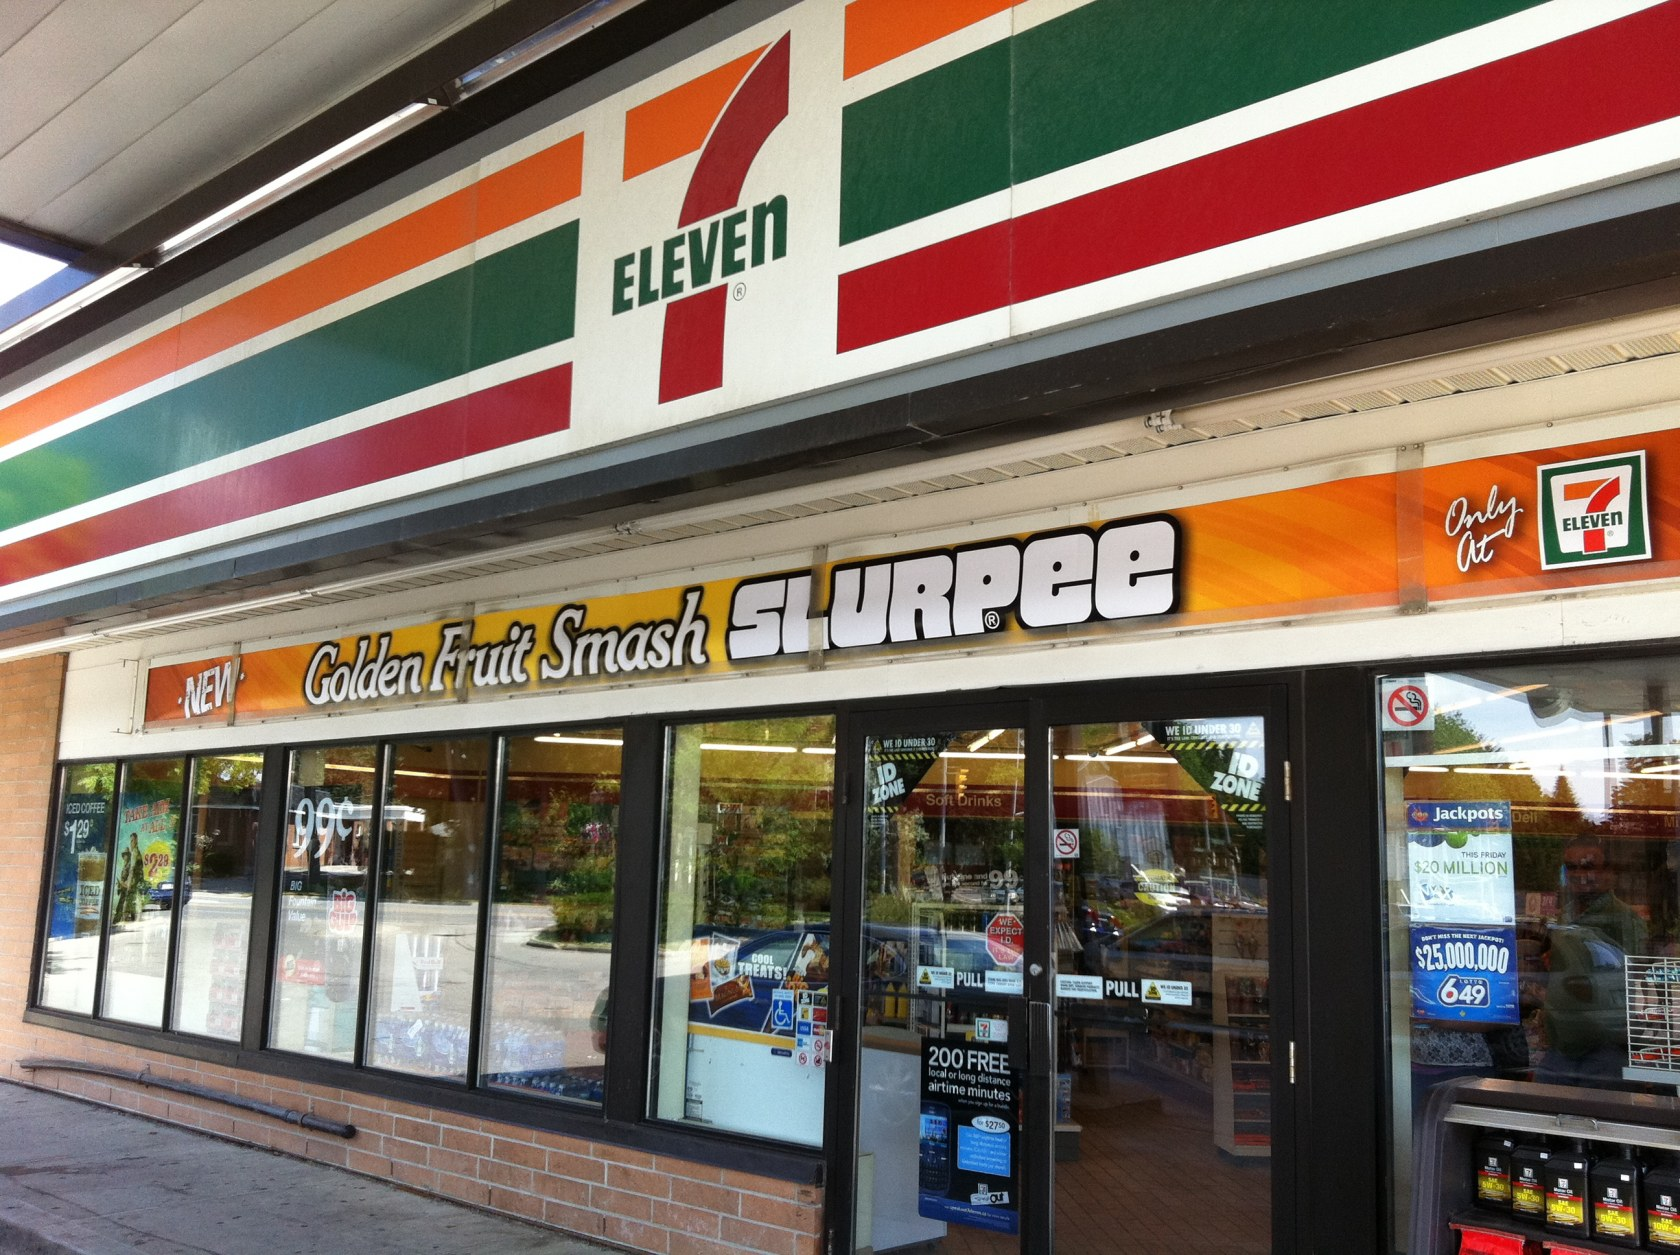 7-Eleven introduces mobile checkout